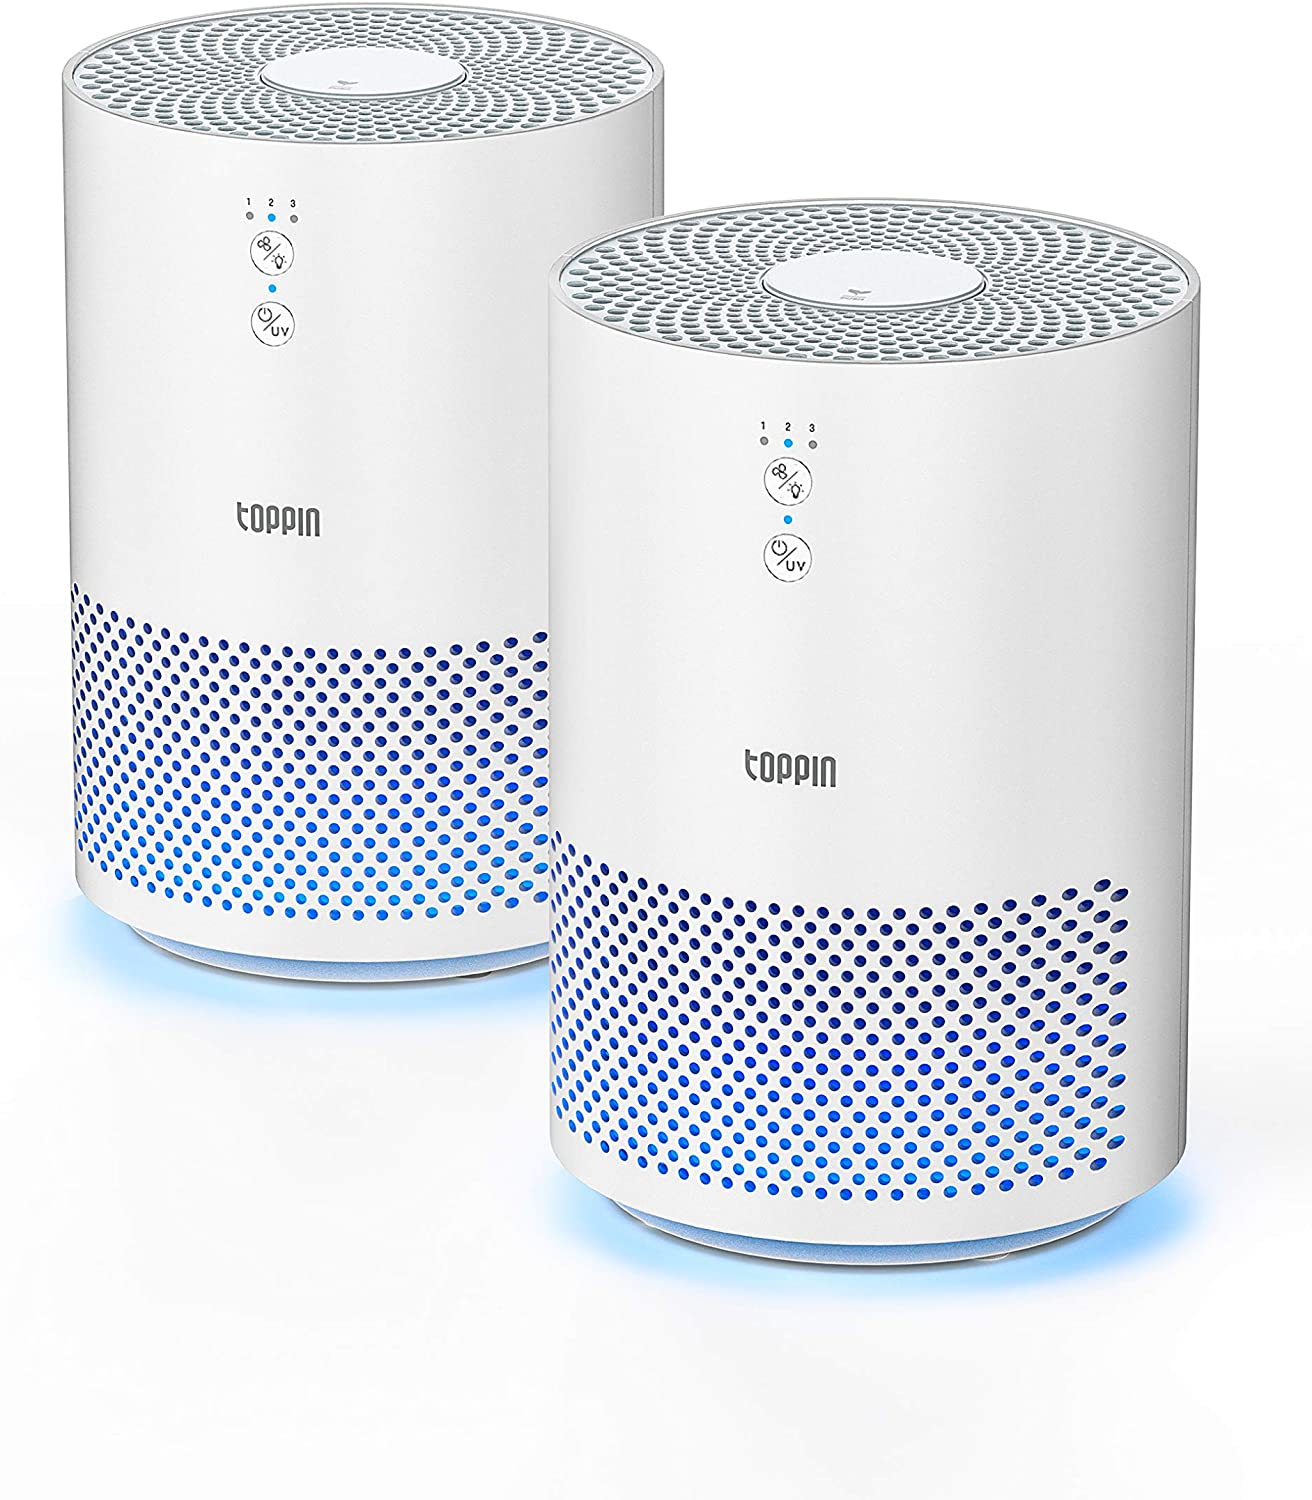 TOPPIN HEPA Air Purifiers for Home with UV Light Fragrance Sponge 2pcs Pet Hair Dander Pollen Smoke Dust Airborne Contaminants Odors Home Air Cleaner with Filter Night Light